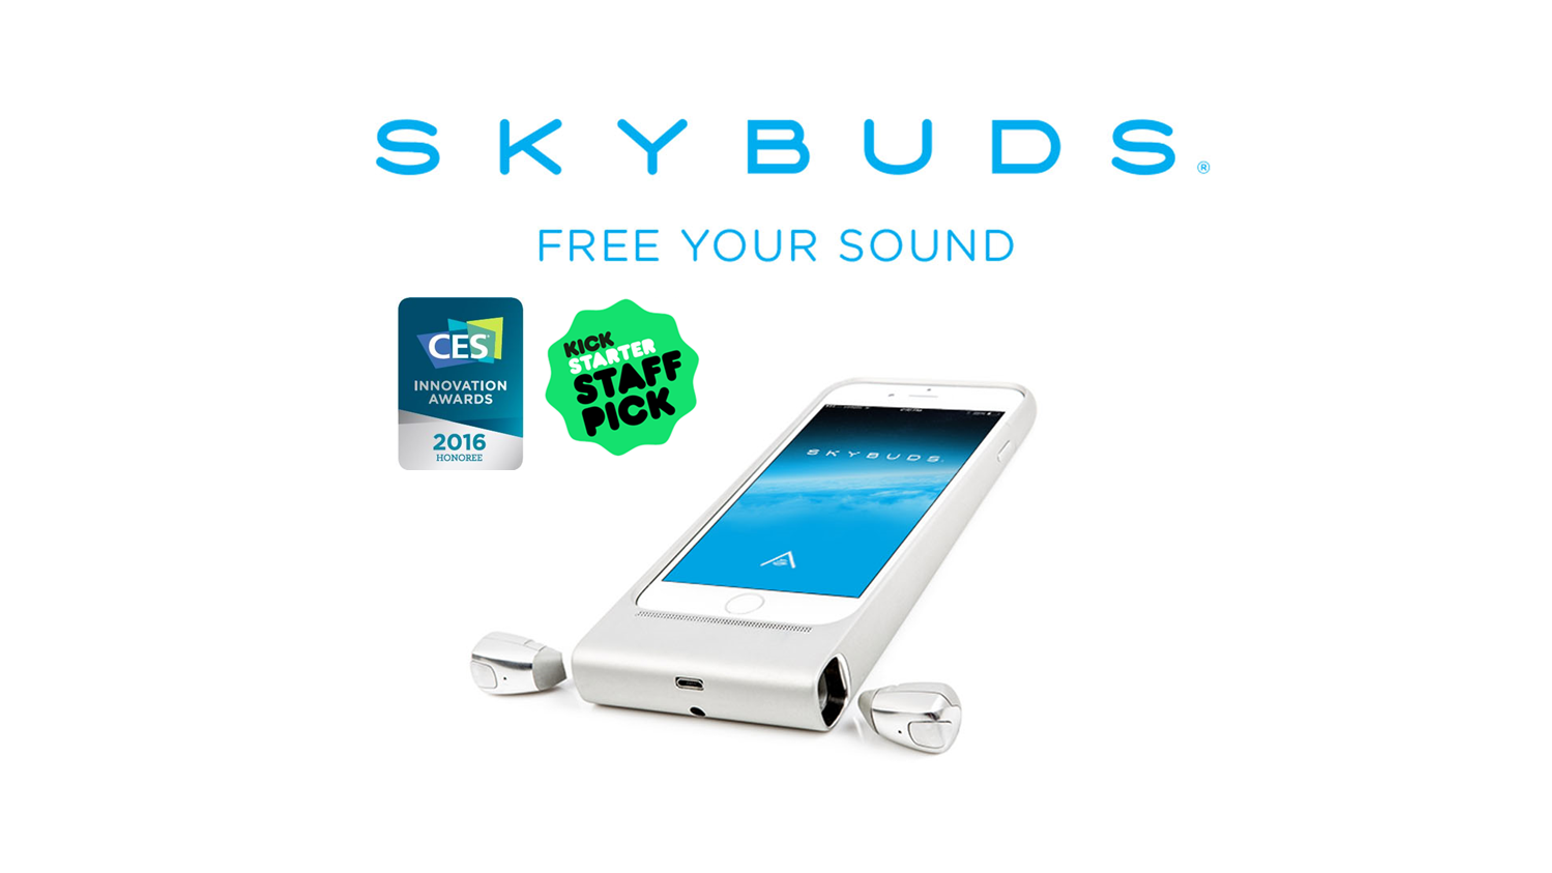 Skybuds - Truly wireless earbuds and smartphone case for charging and storage.